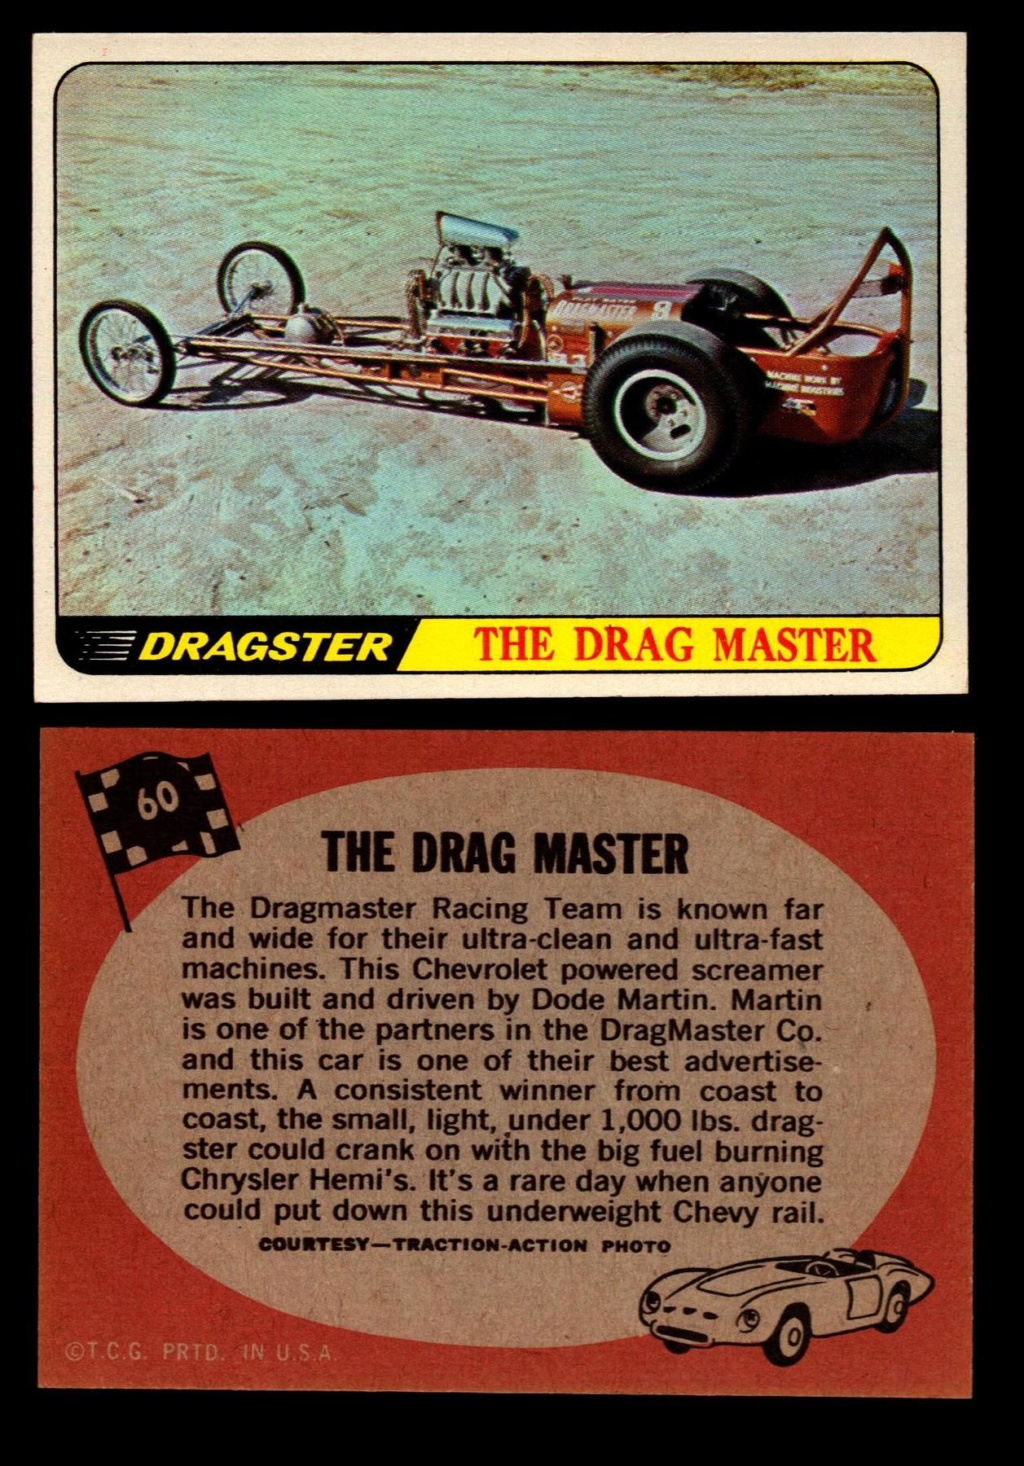 Hot Rods Topps - Vintage Trading Cards 1968 - Custom car - Dragster - Racer - Dream car - Barris Kustom City - Ed Roth Darrill Starbird, Gene Winfield, Bill Cuchenberry - Page 3 60_32610